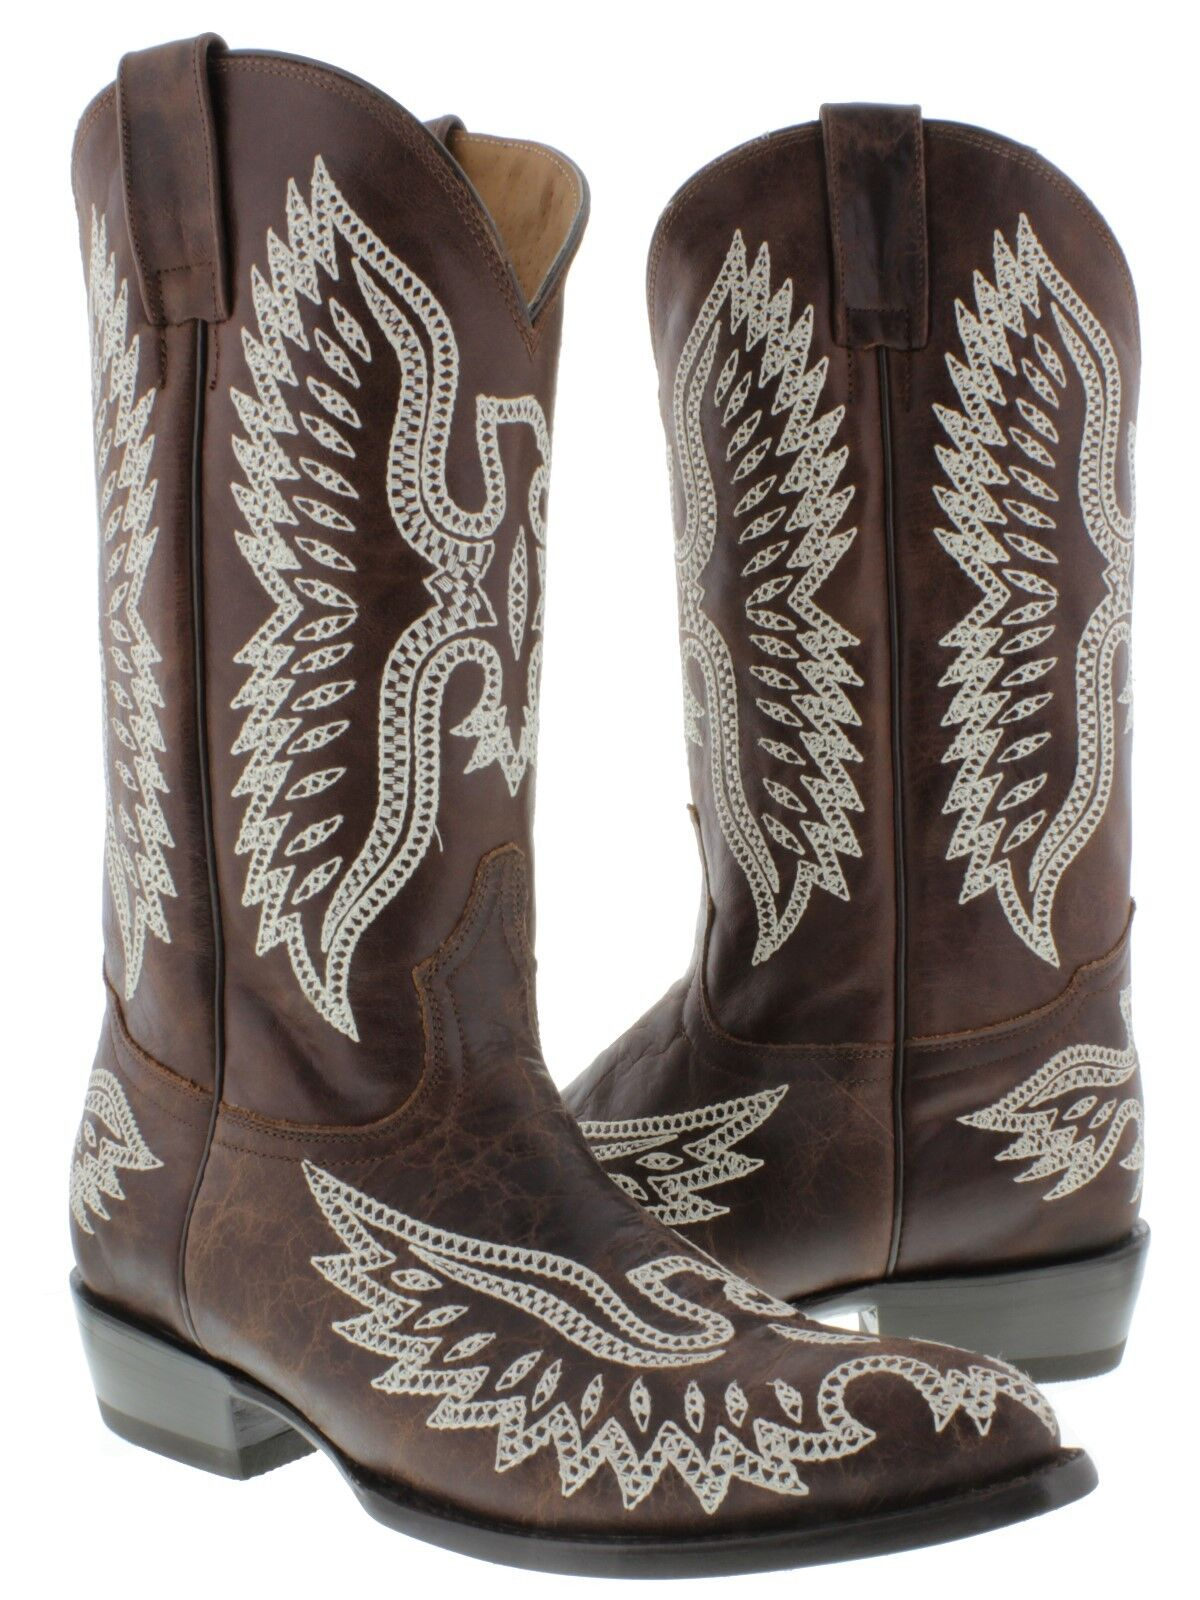 Men's Chocolate Brown Classic Leather Western Cowboy Boots Riding J Toe